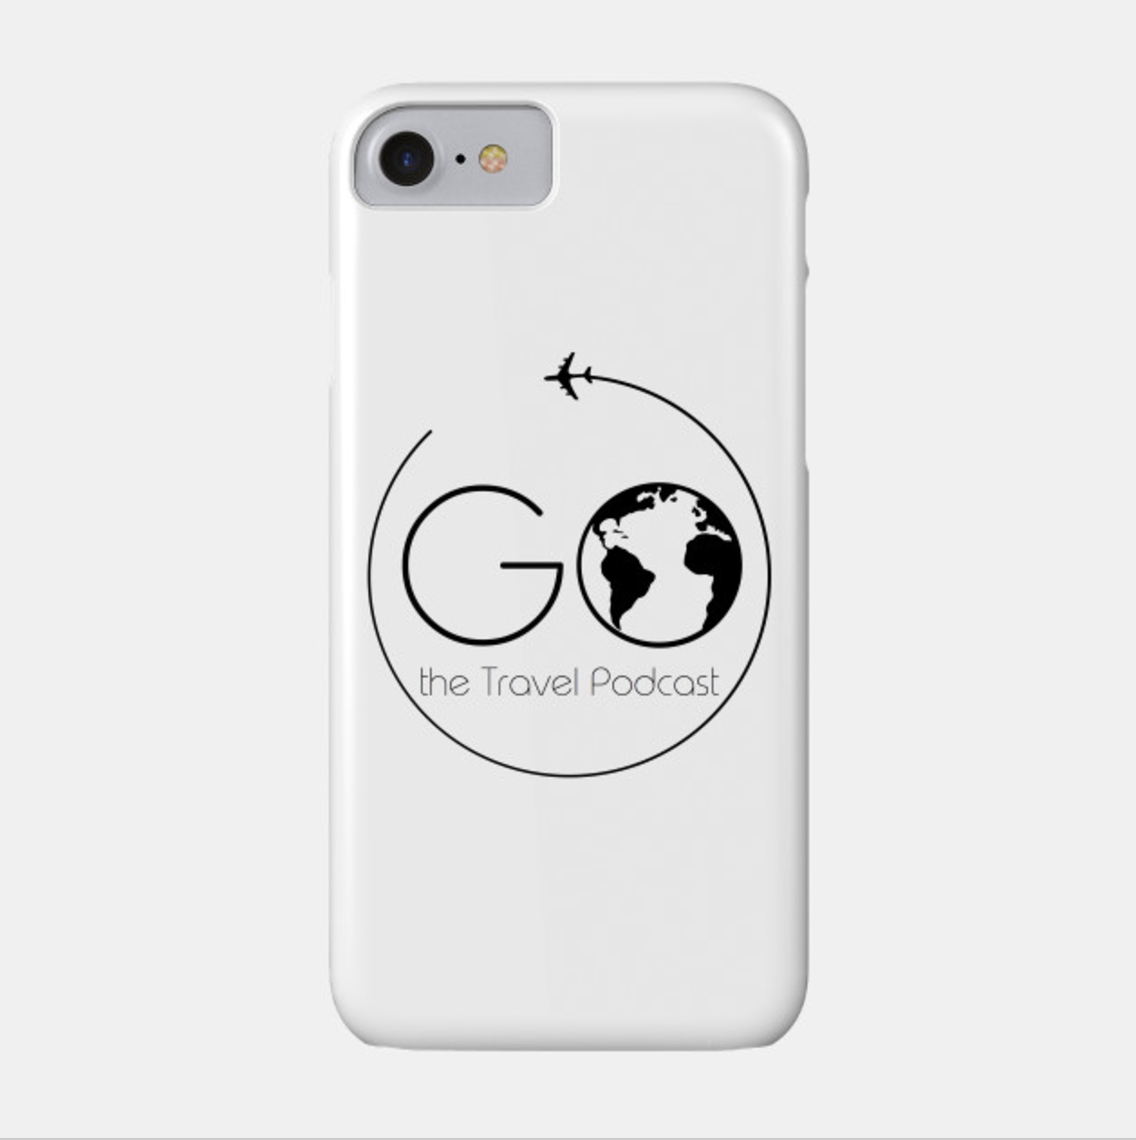 Go the Travel Podcast iPhone Case